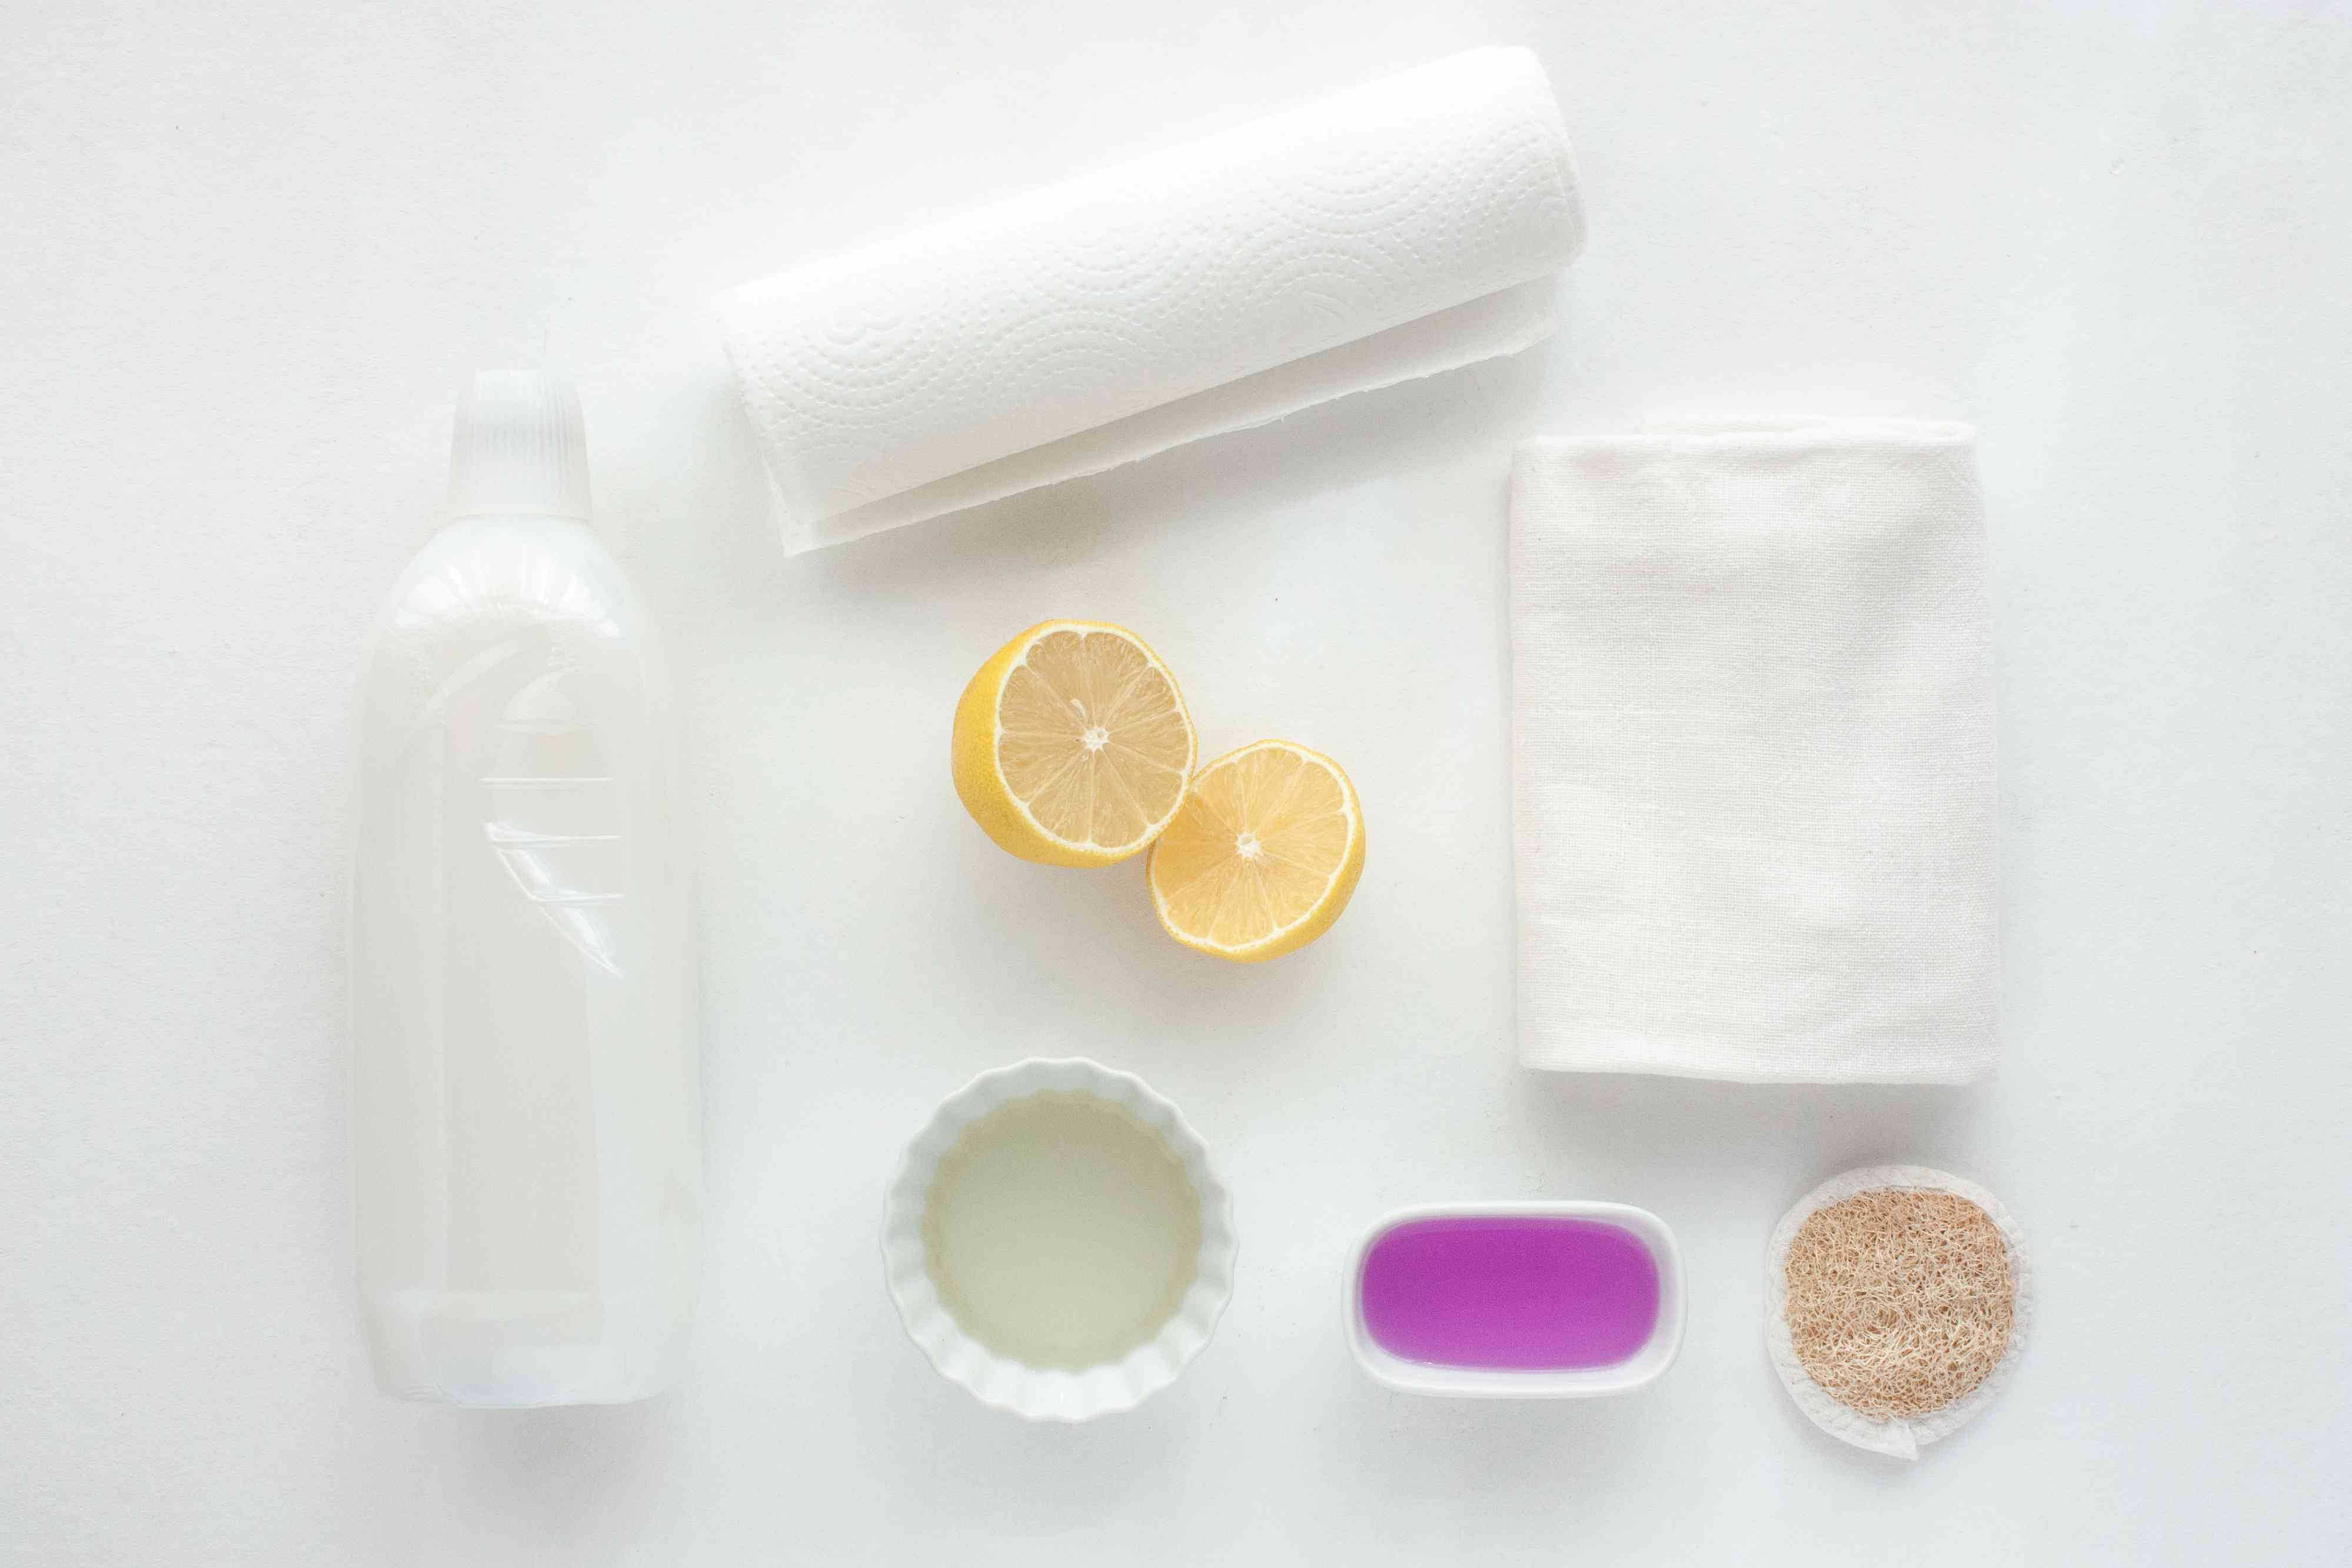 materials for getting rid of soy sauce stains